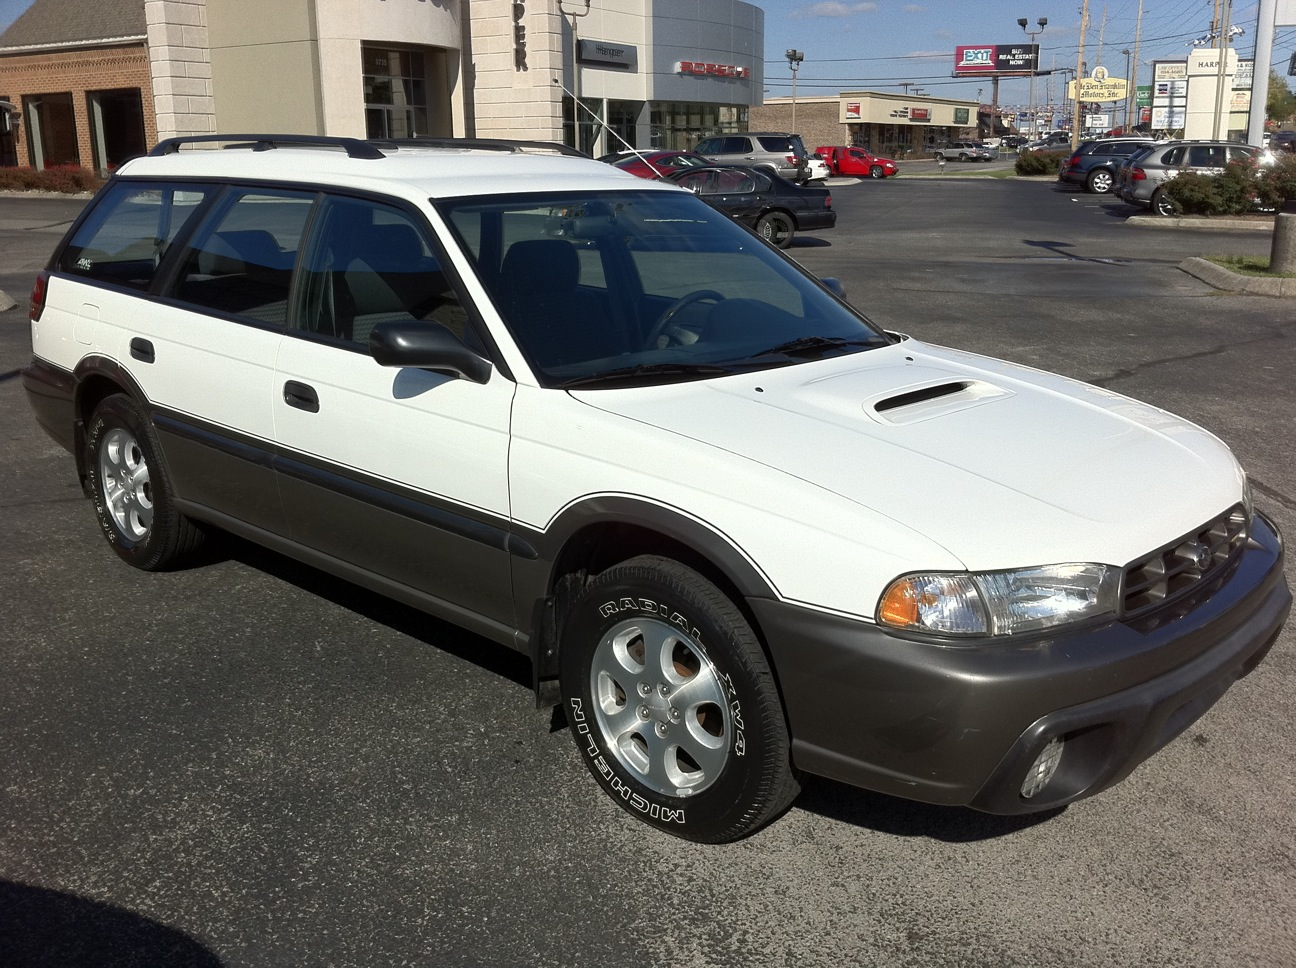 harper infiniti trade ins 1998 subaru outback for sale in knoxville tennessee harper infiniti. Black Bedroom Furniture Sets. Home Design Ideas